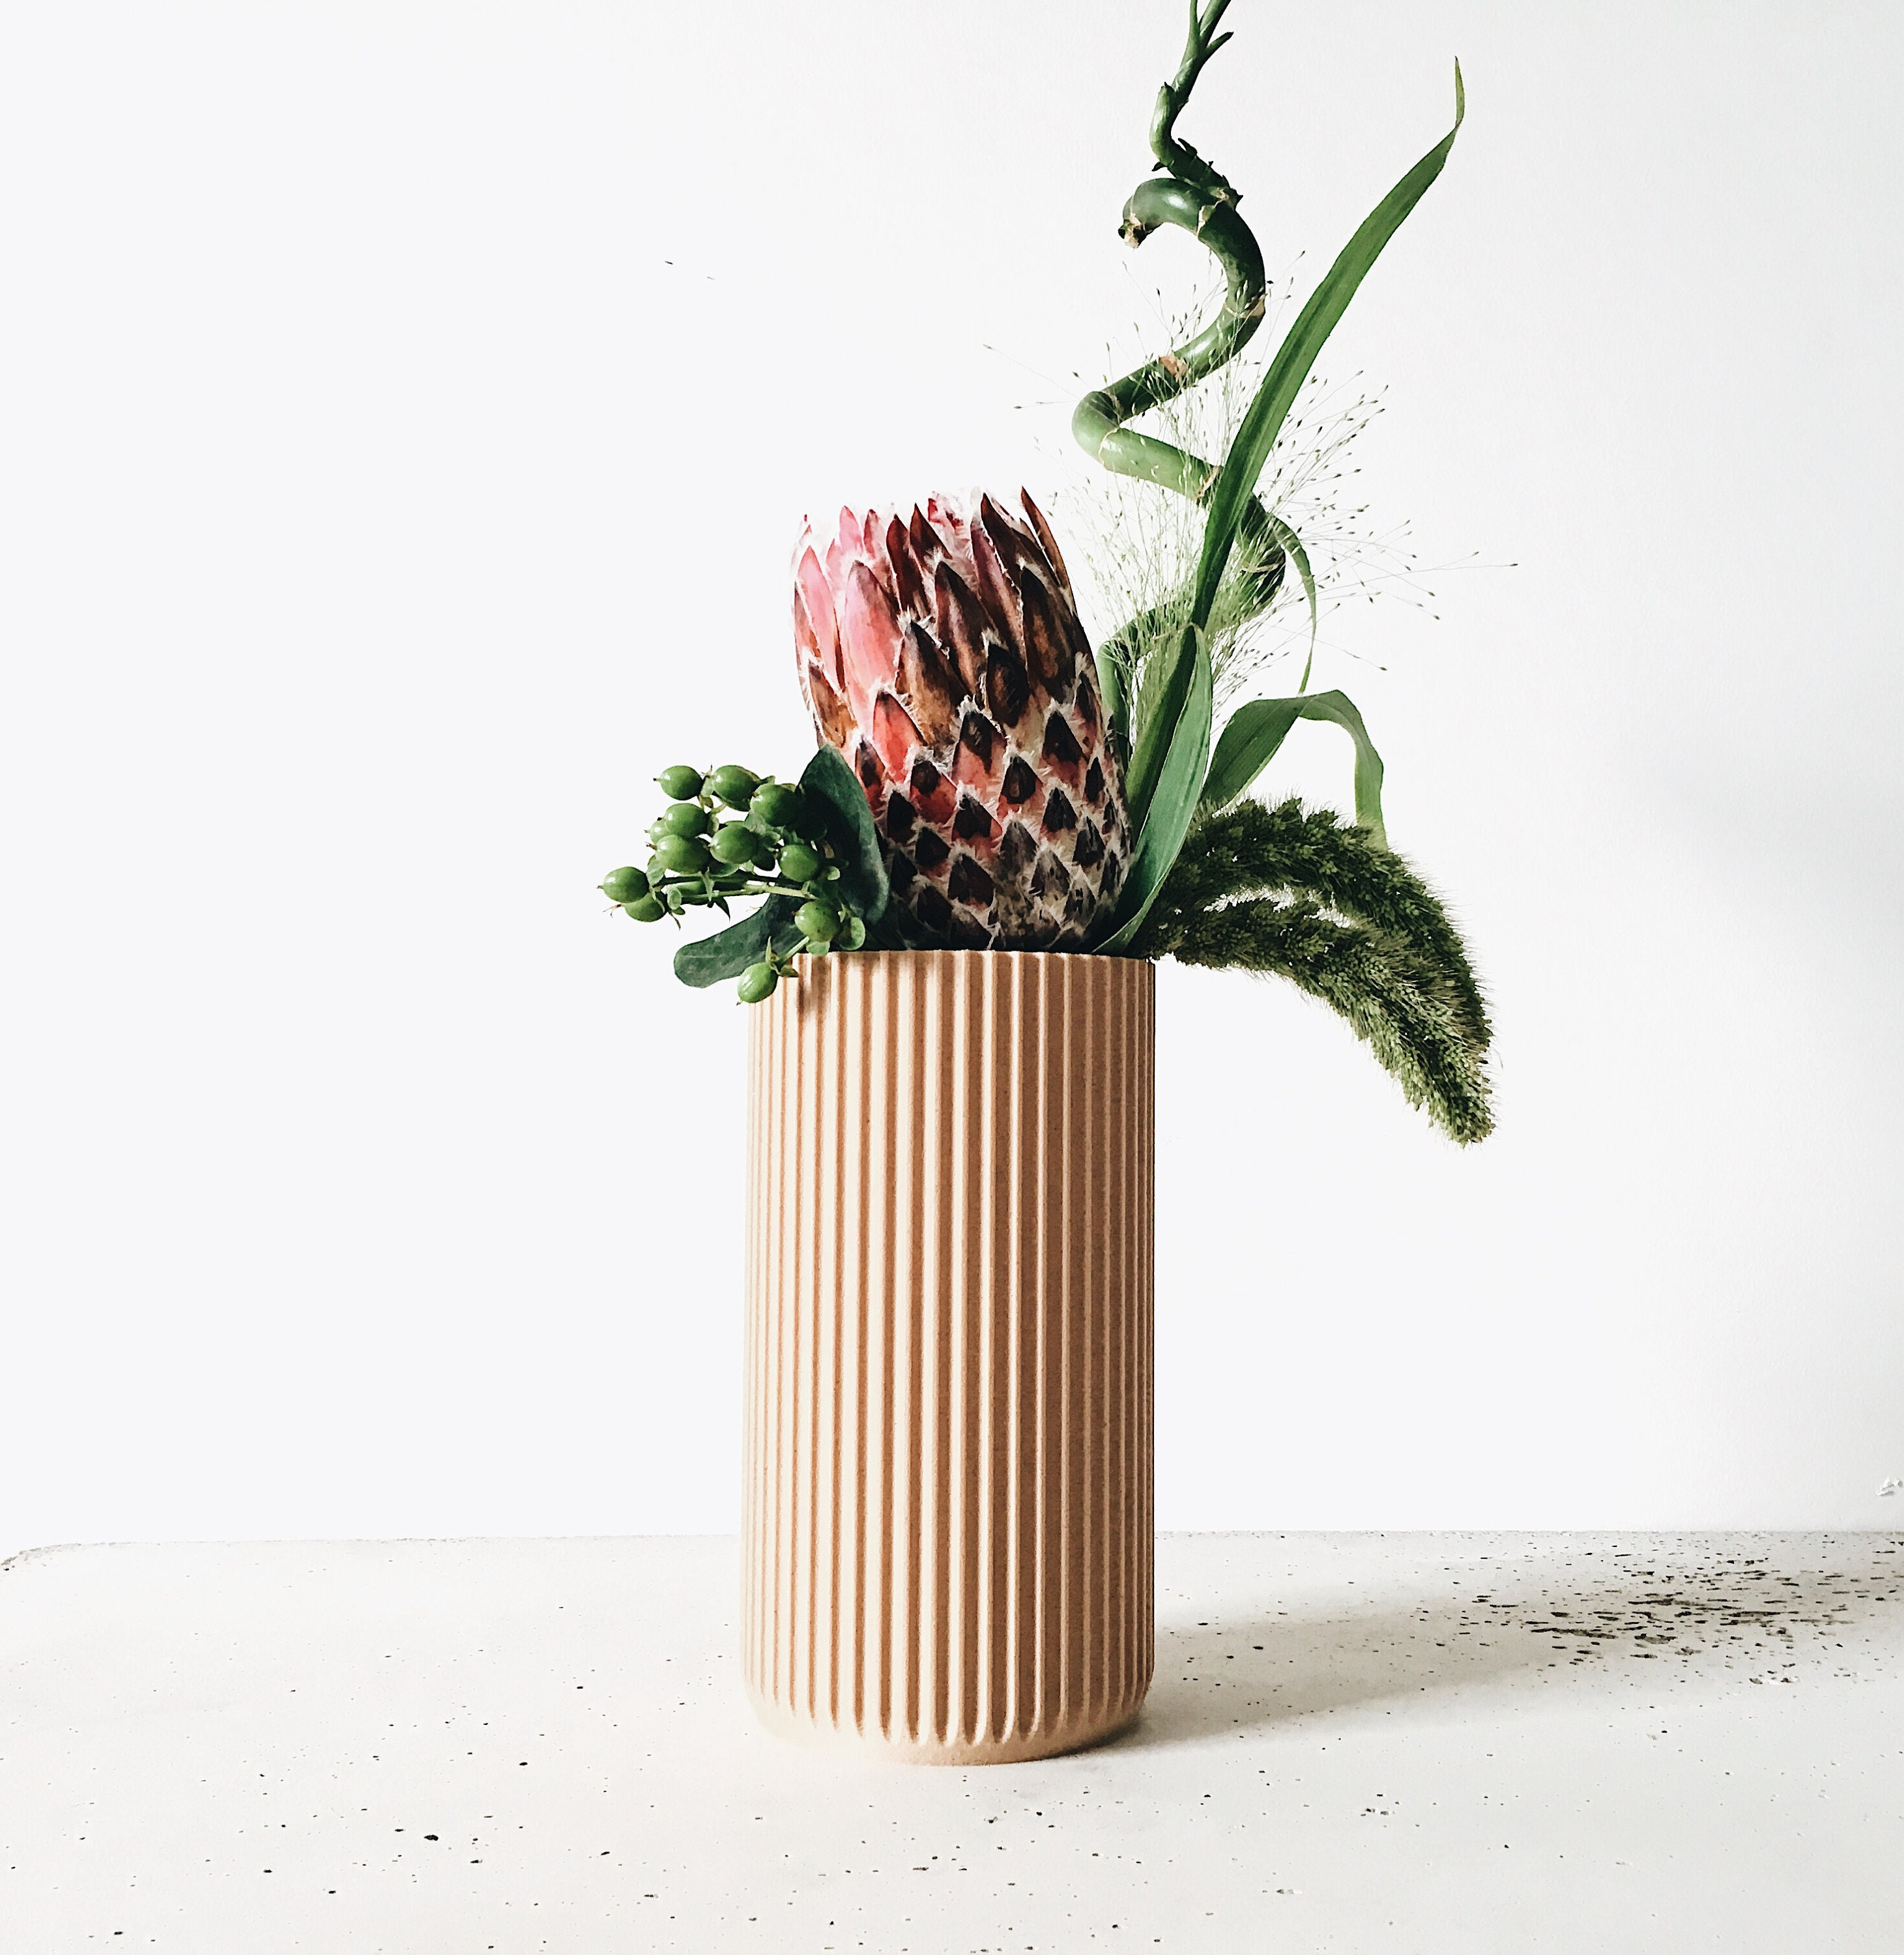 L Ikebana Pas À Pas large vase - design & minimalist vase - dry flowers pot - stockholm printed  in wood - scandinavian hygge decor - original gift for her